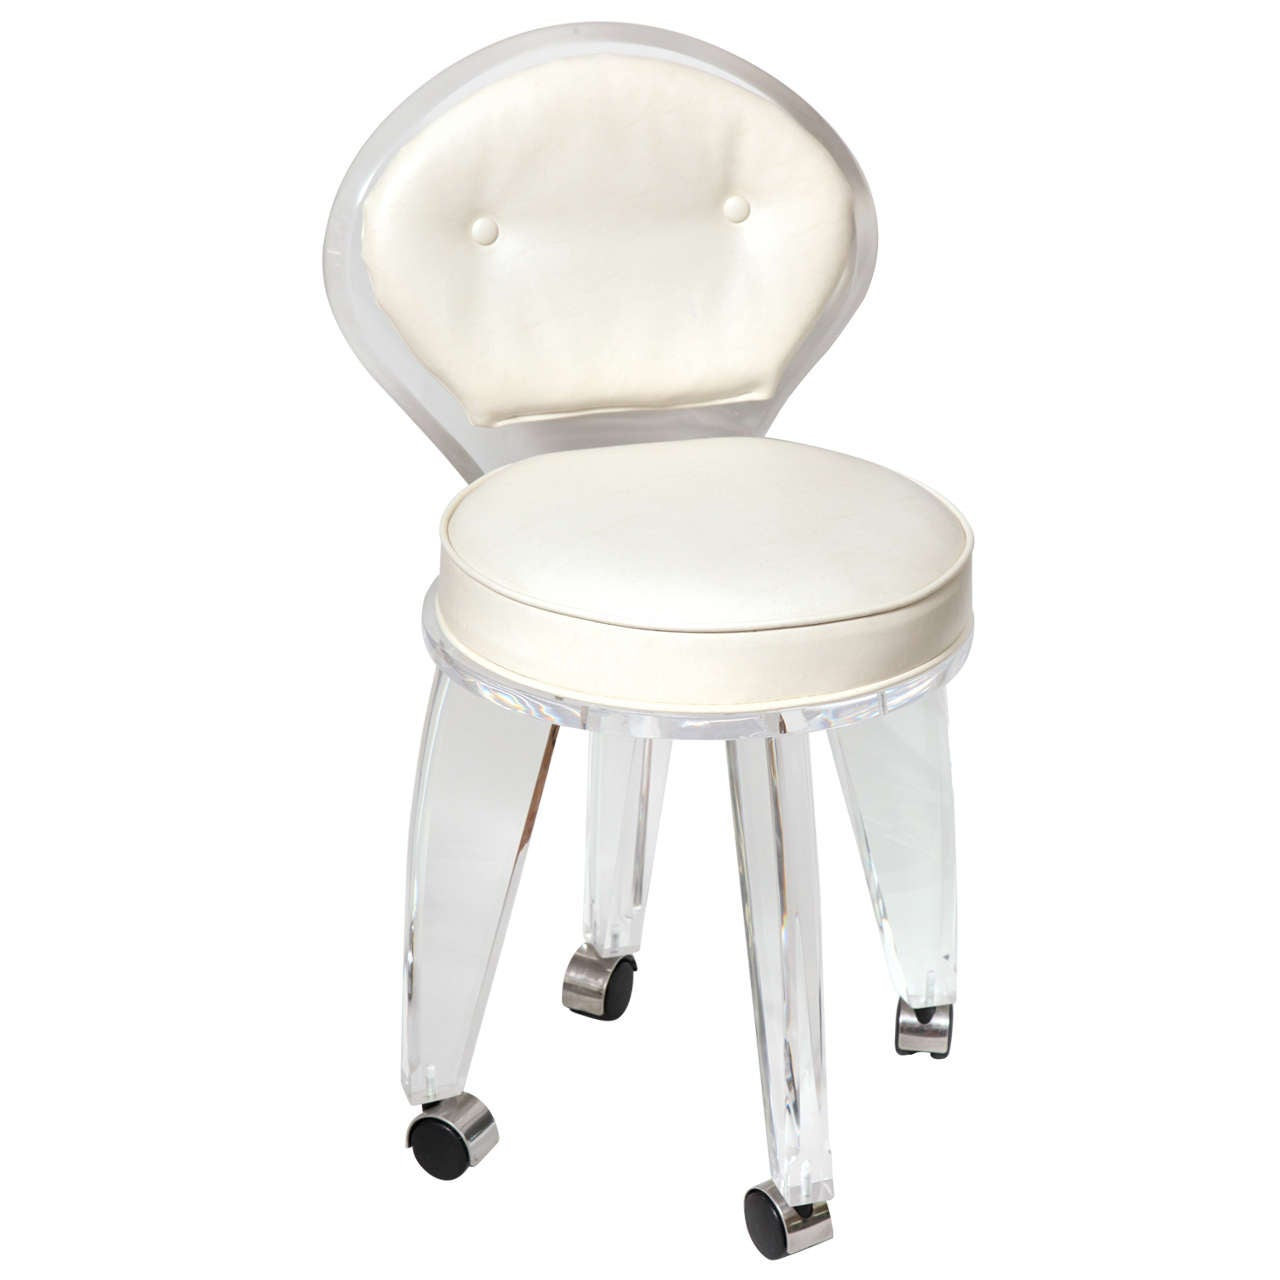 Lucite Vanity Chair Lucite Upholstered Rolling Swivel Vanity Chair At 1stdibs